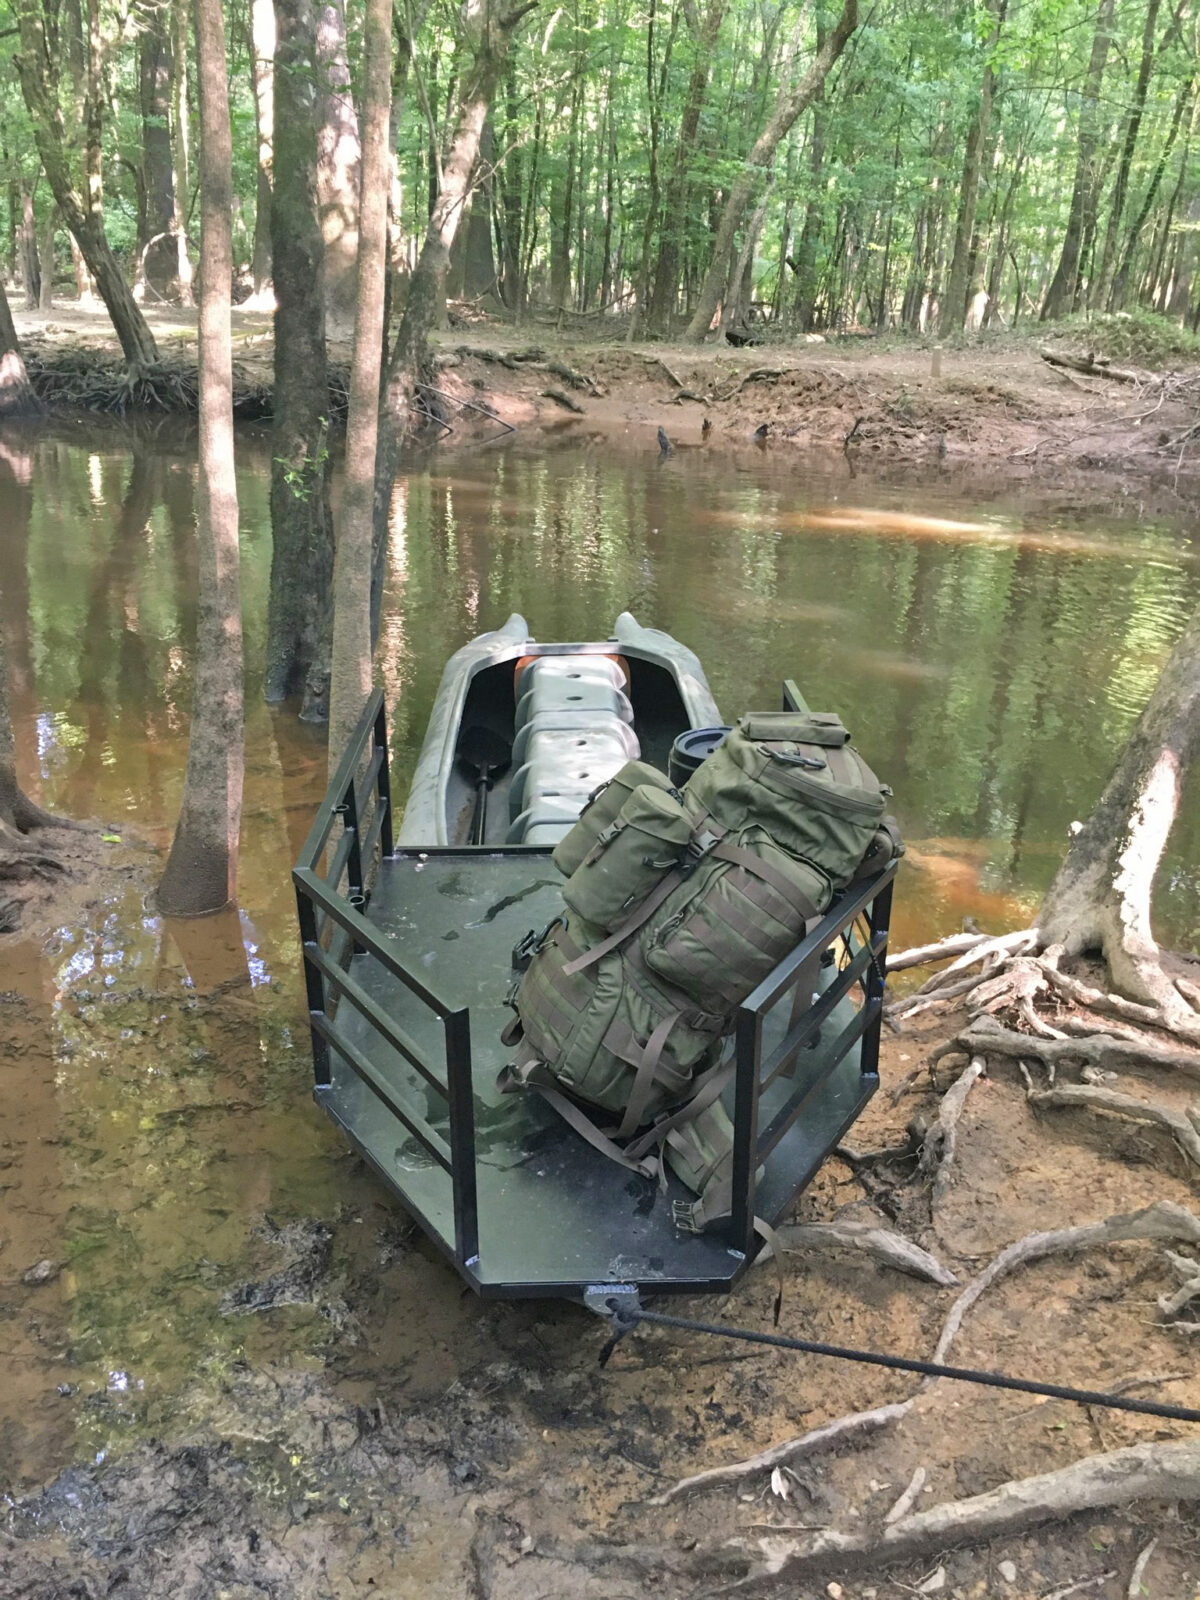 Testing my S4 hunting boat with a dog platform